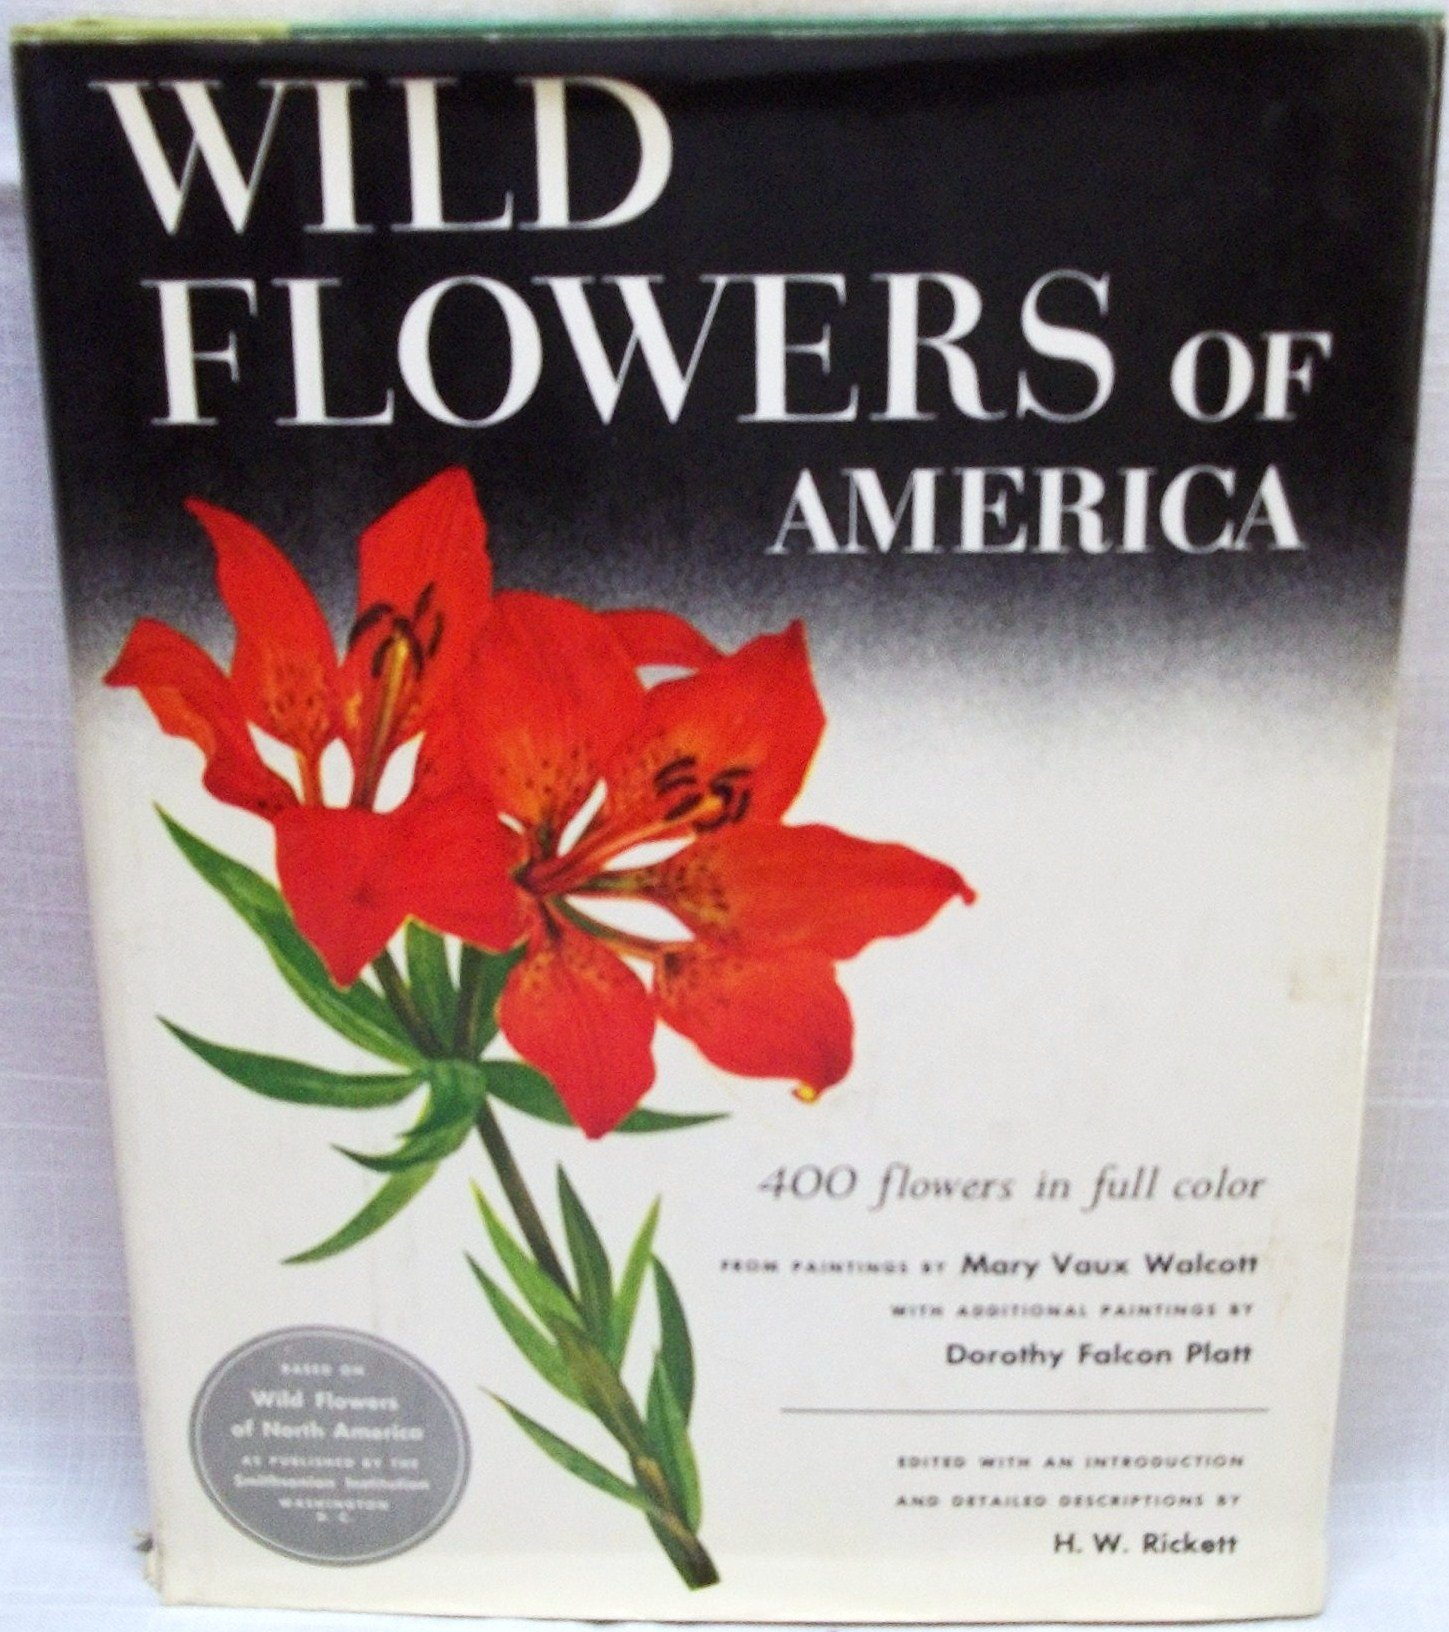 Wild Flowers of America: 400 Flowers in Full Color: H.W. Ricketts ...